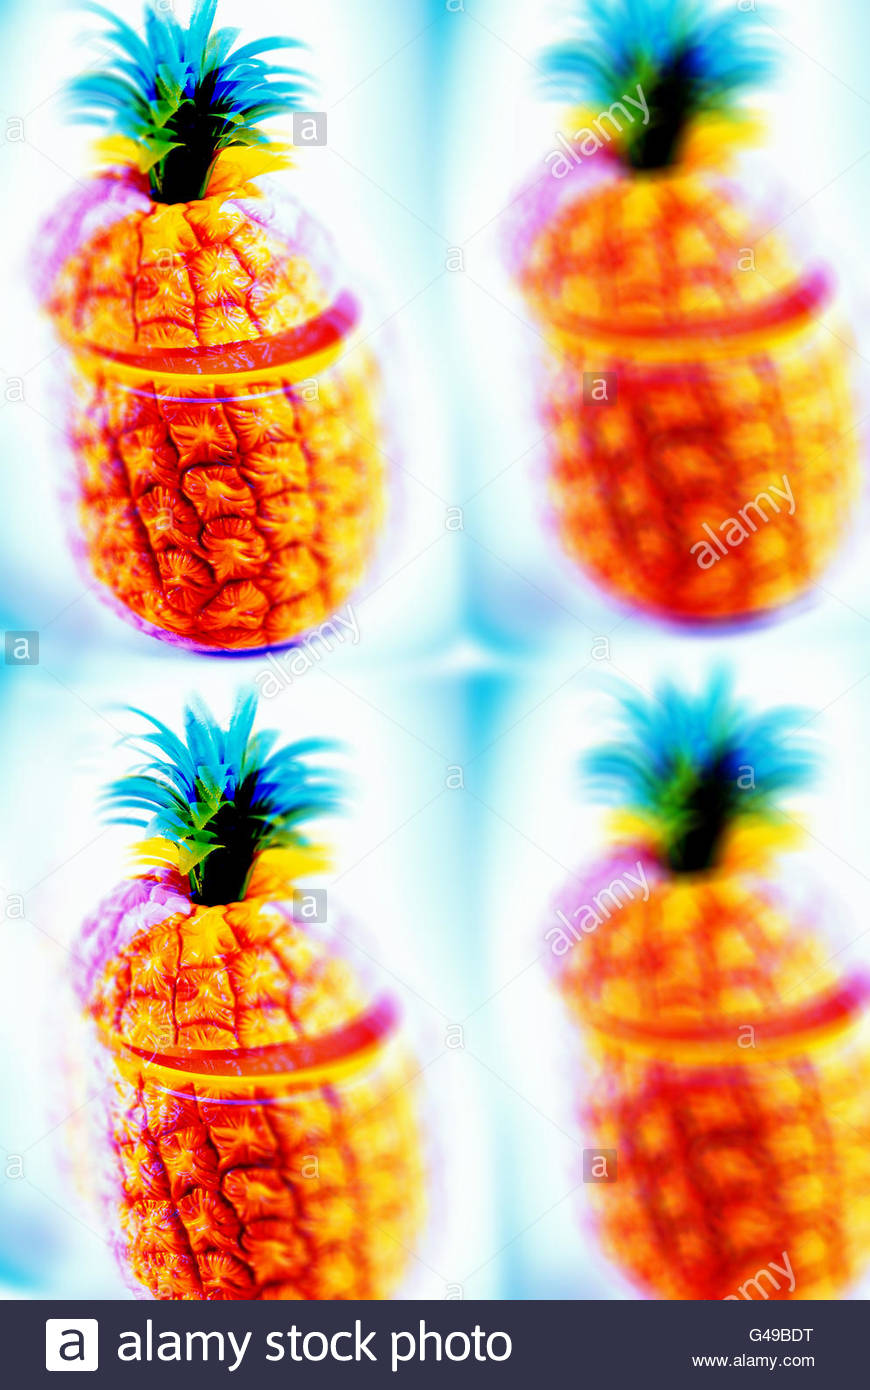 Pineapple ice bucket hawaiian south seas cocktail fifties plastic repeat - Stock Image